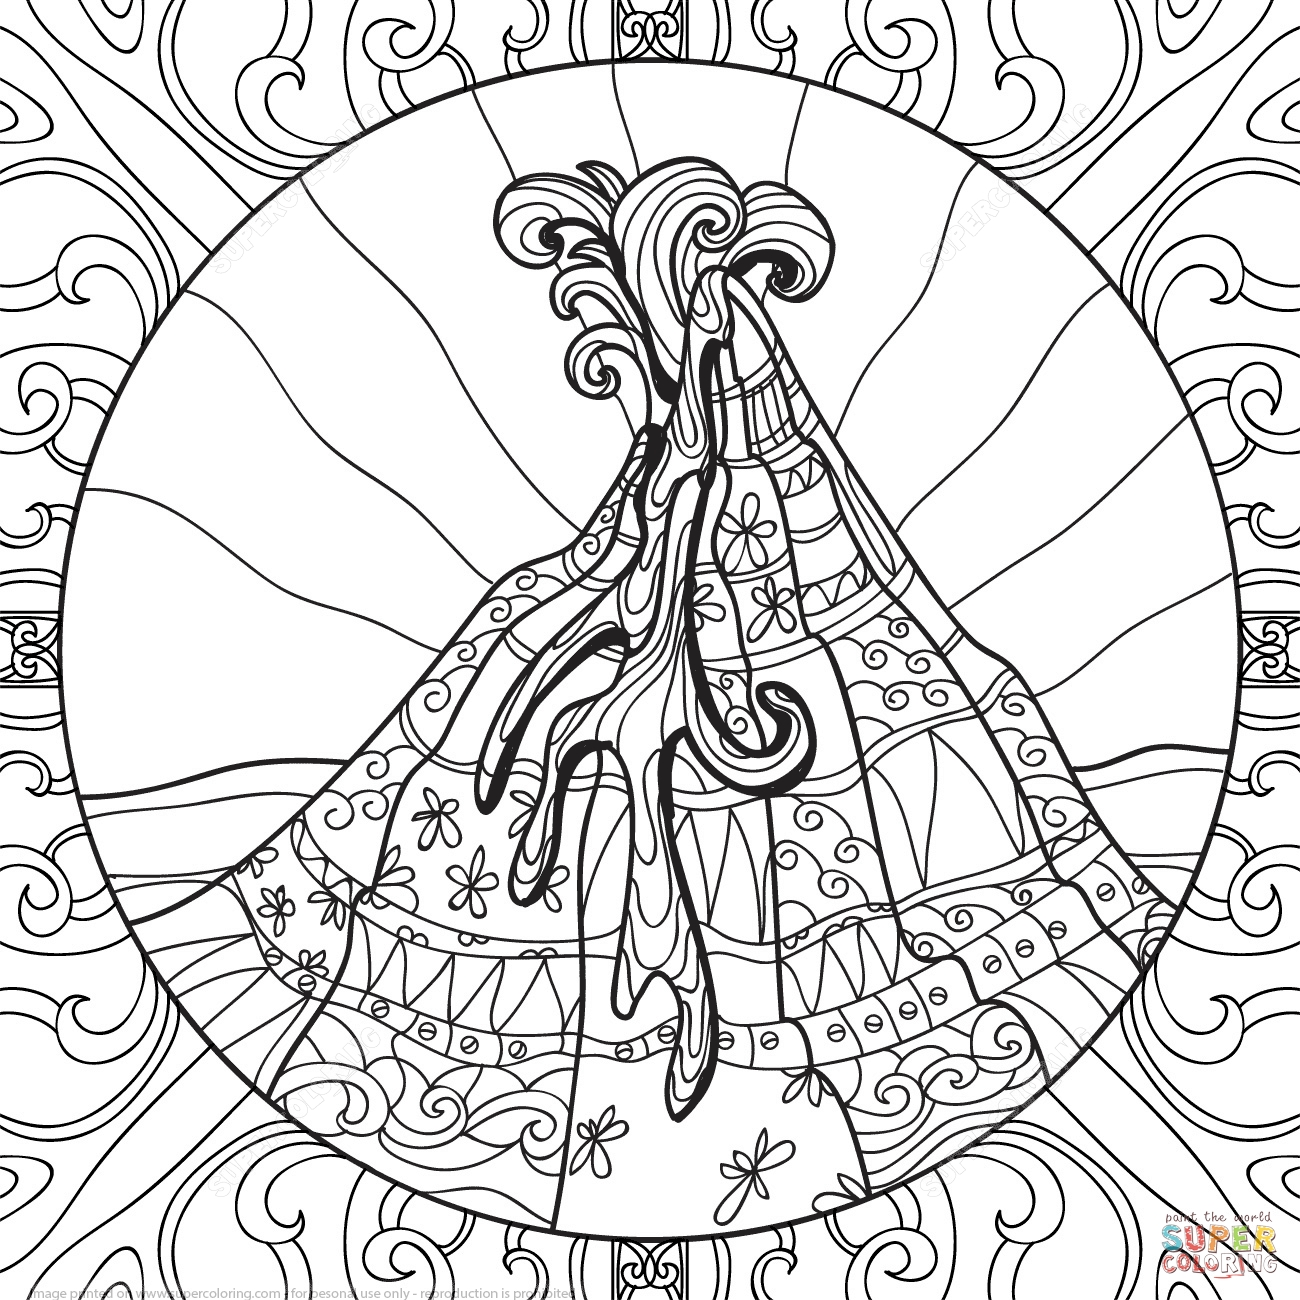 1300x1300 Printable Chameleon Zentangle Coloring Page Pergamano Free